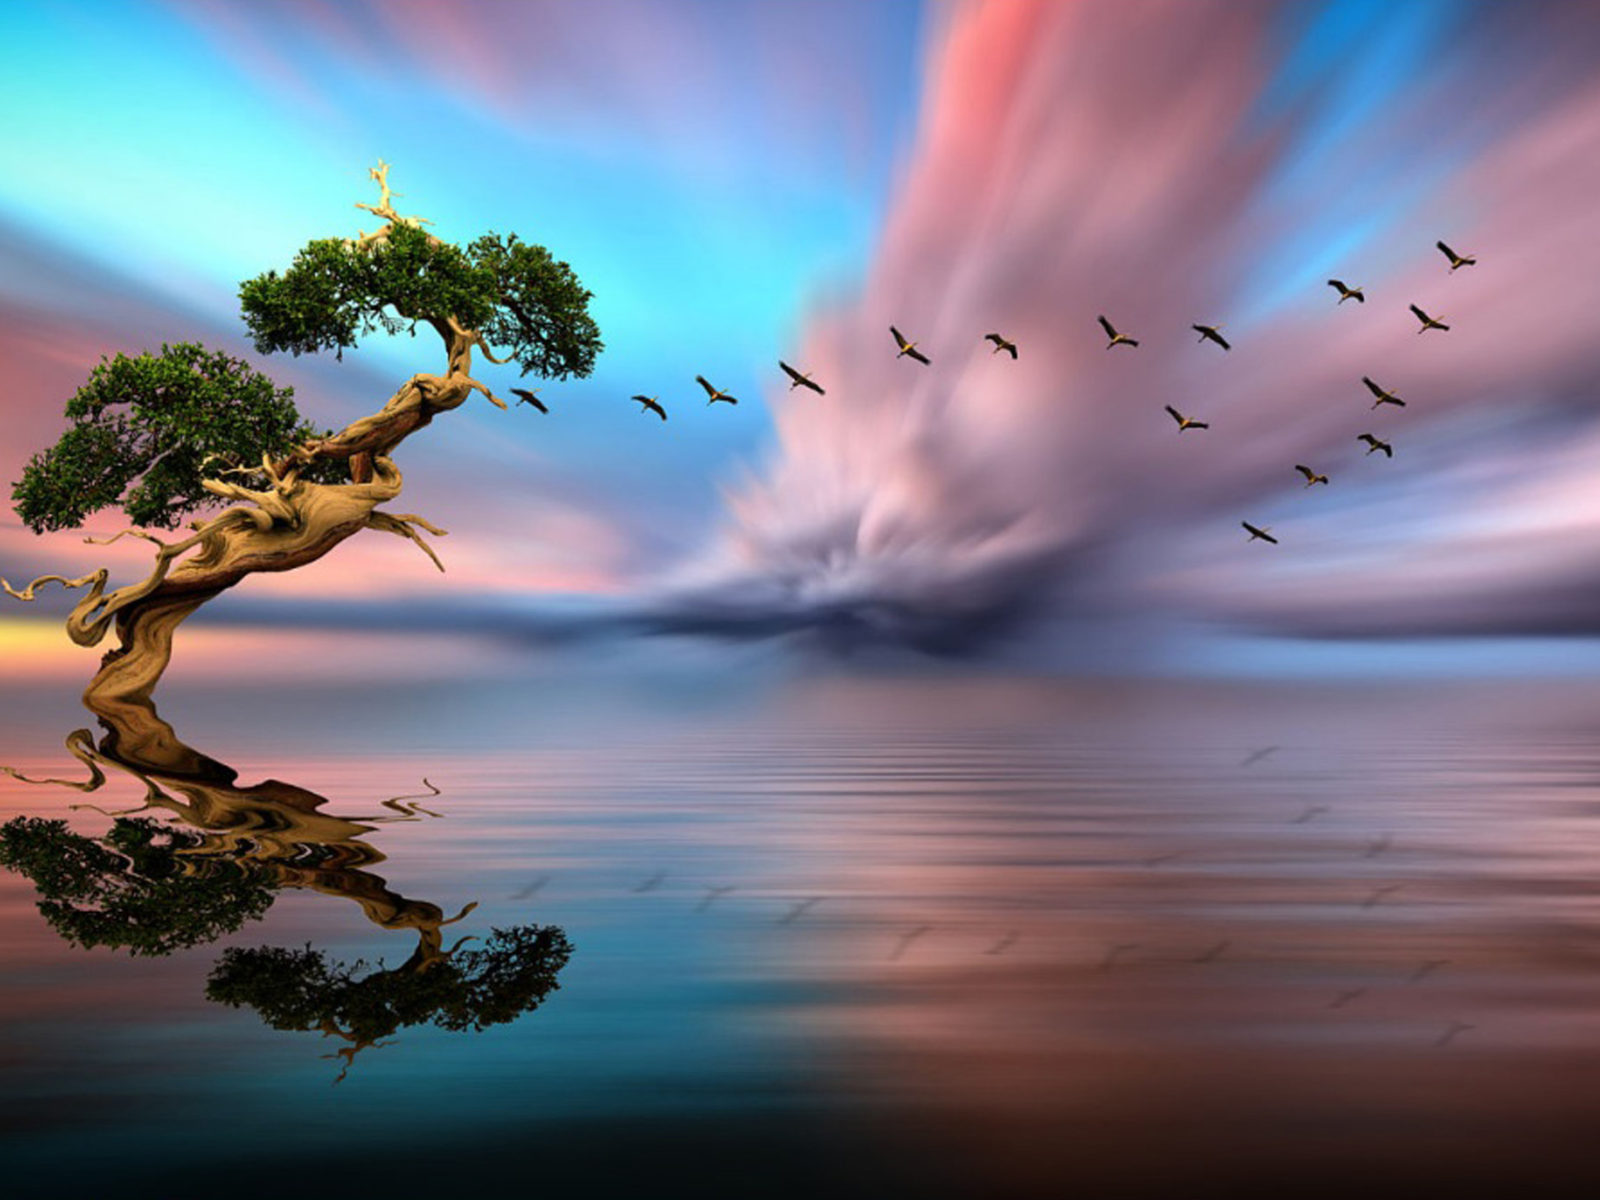 Fall Wallpaper Free Iphone Solitary Tree Lake Birds In Flight Red Cloud Sunset